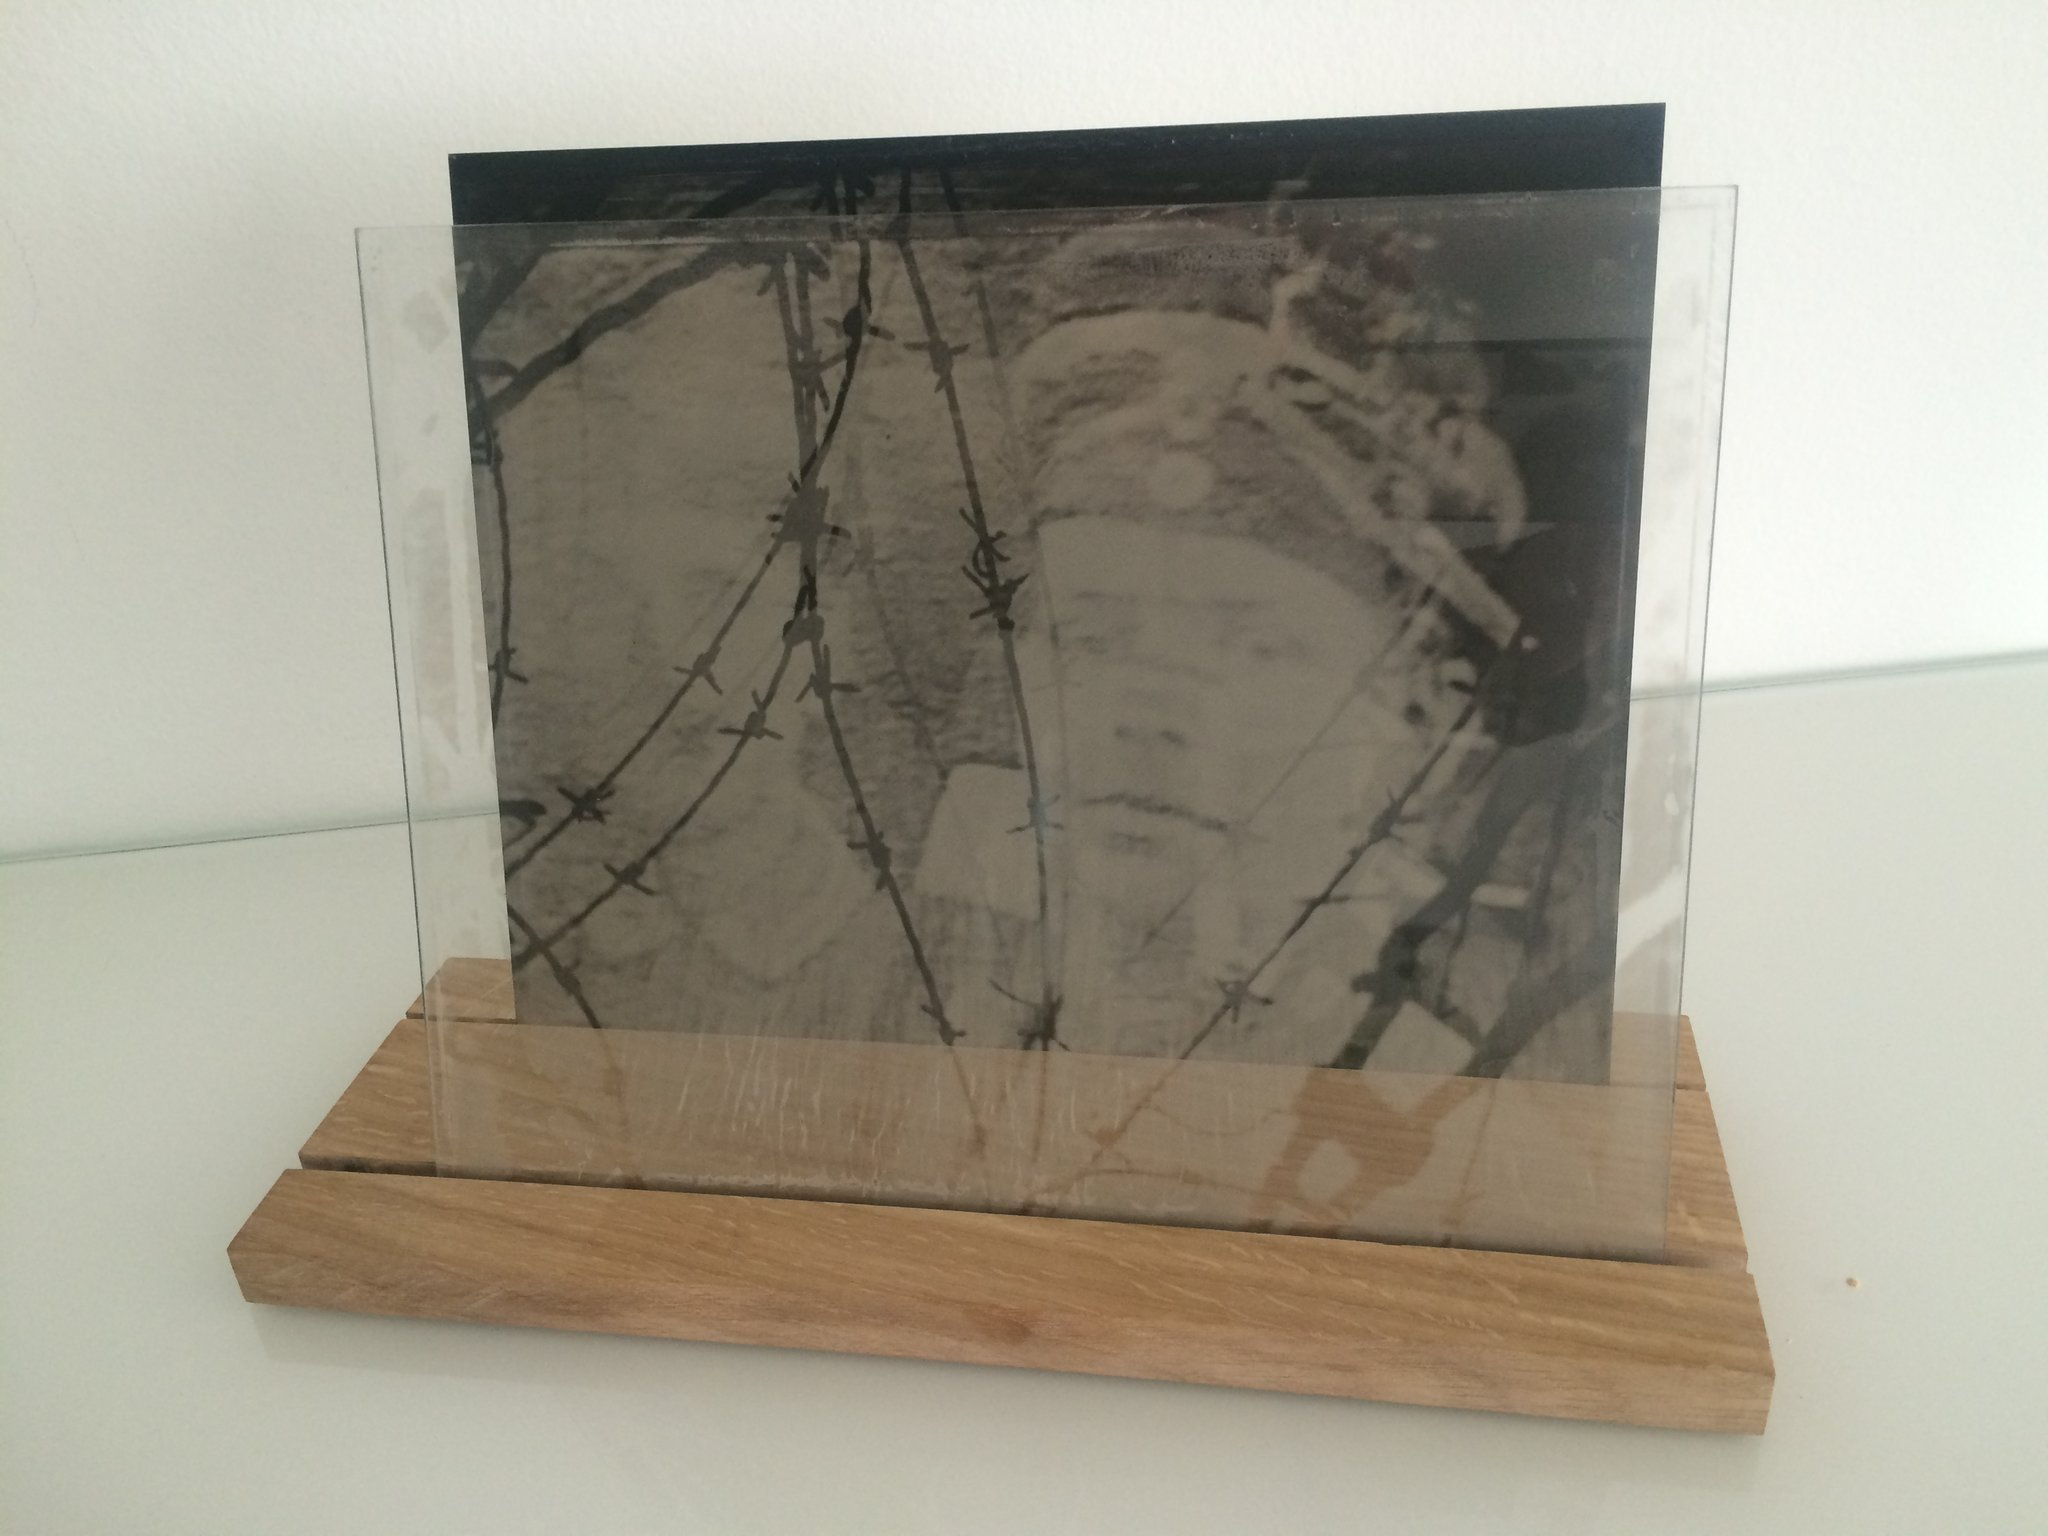 Installation-VERDUN IN MEMORIAM-collodion-009.JPG